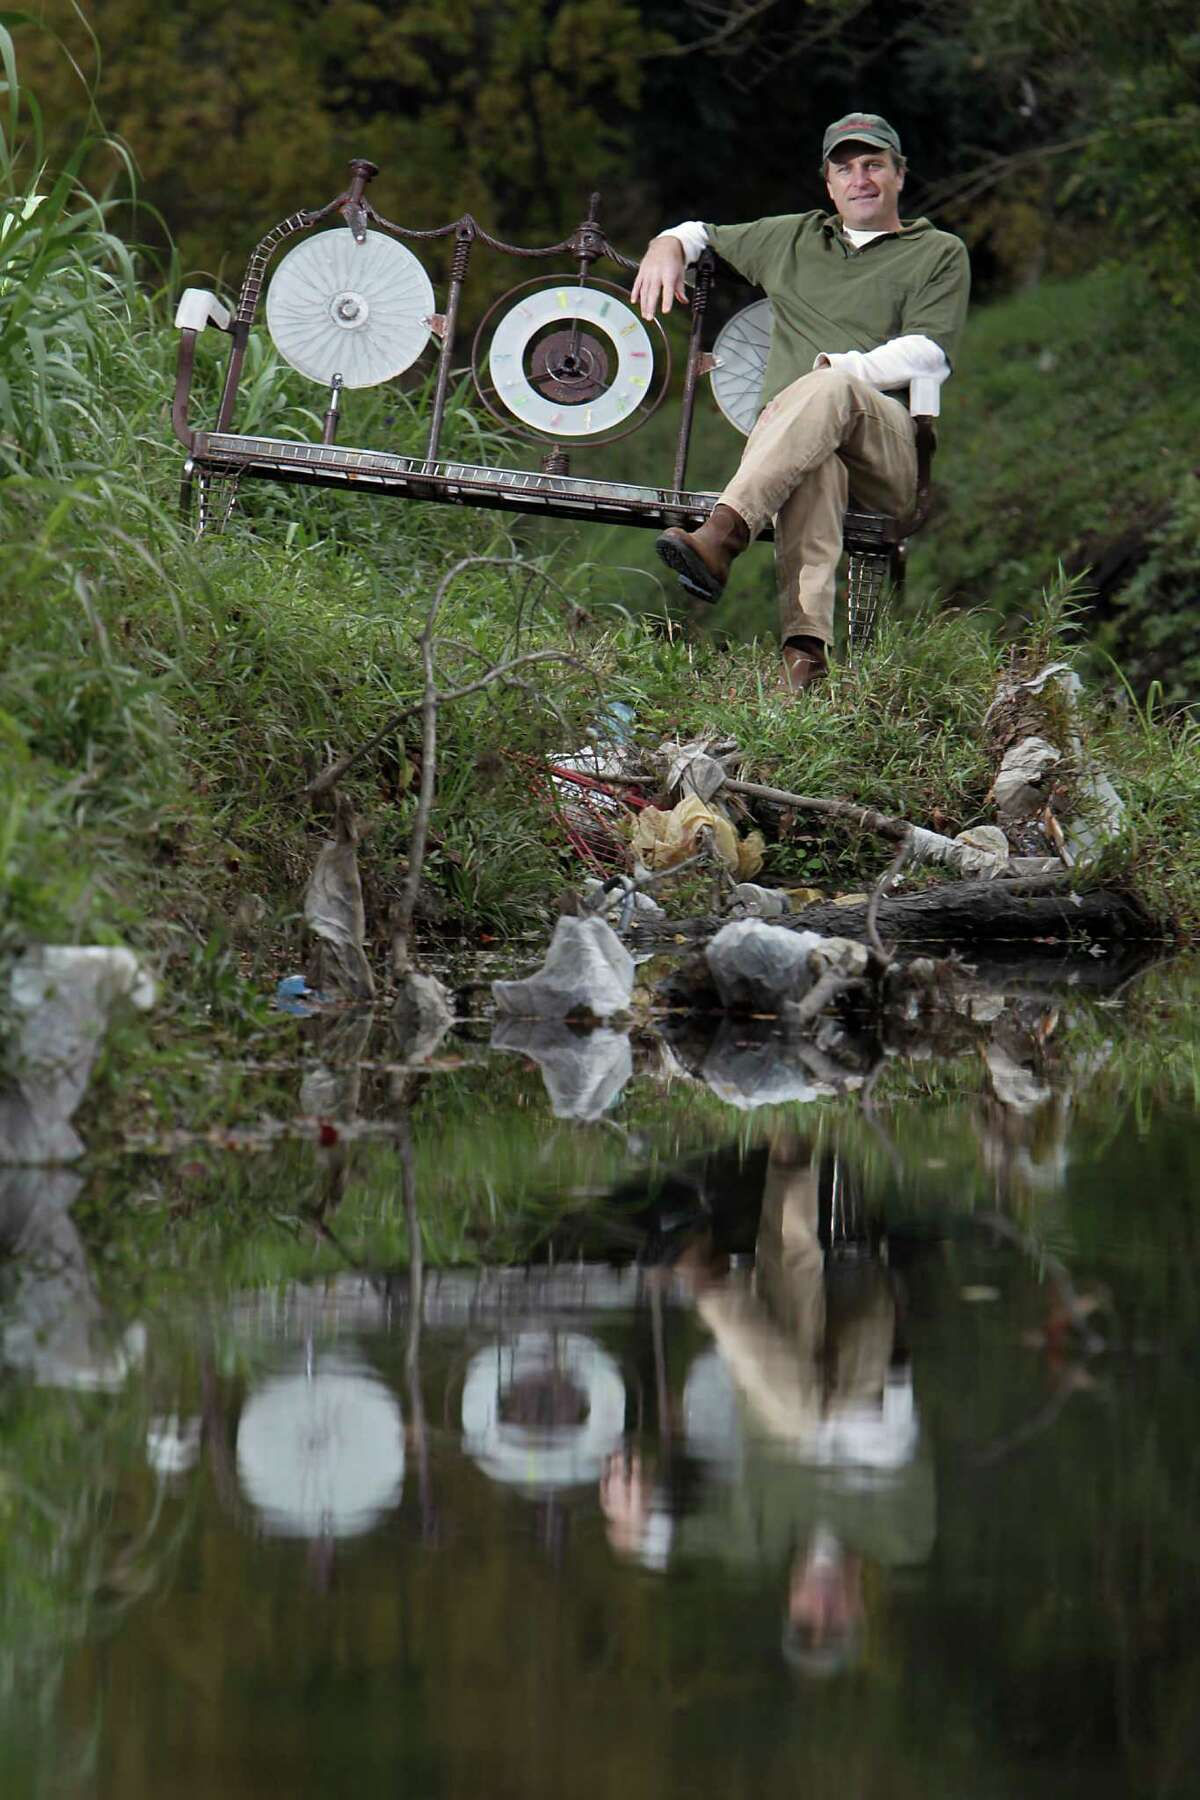 One man's trash is another man's treasure for local artist Sam Jones, who relaxes on a bench he crafted from all kinds of objects he collected along Kuhlman Gully in southeast Houston.